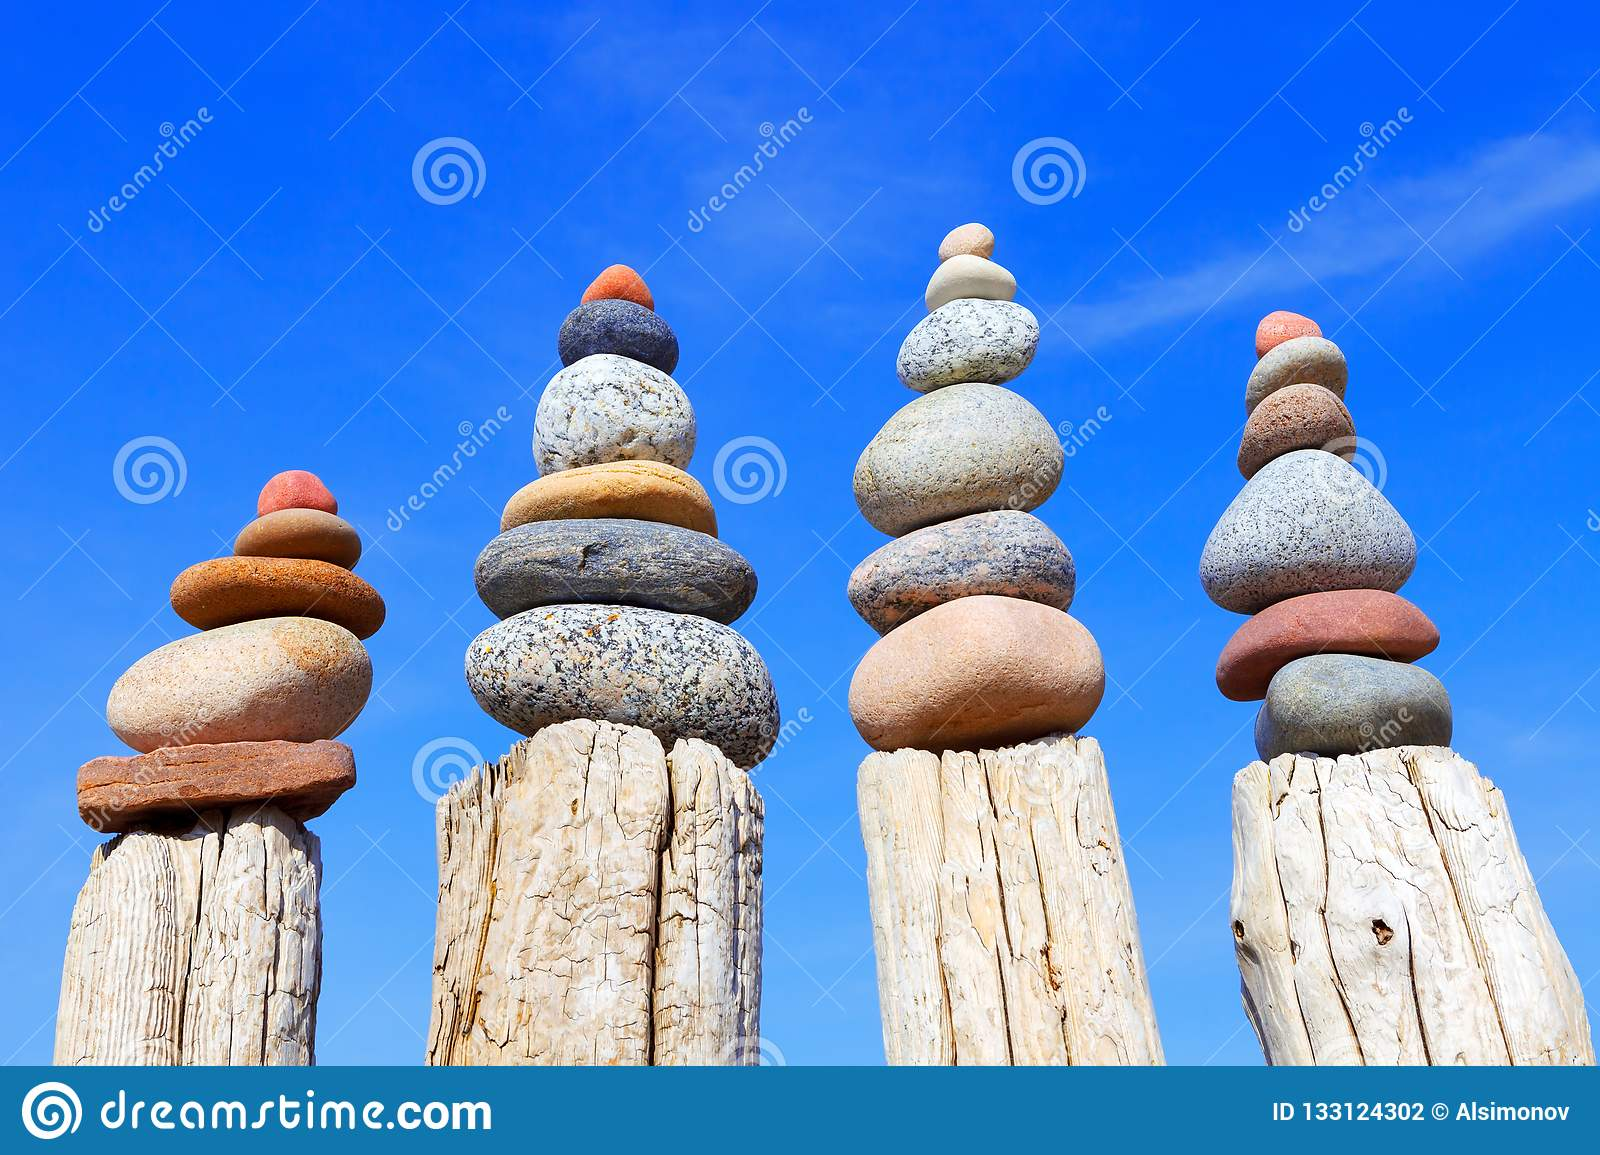 Many of the Rock zen pyramid of white and pink pebbles on a background of blue sky